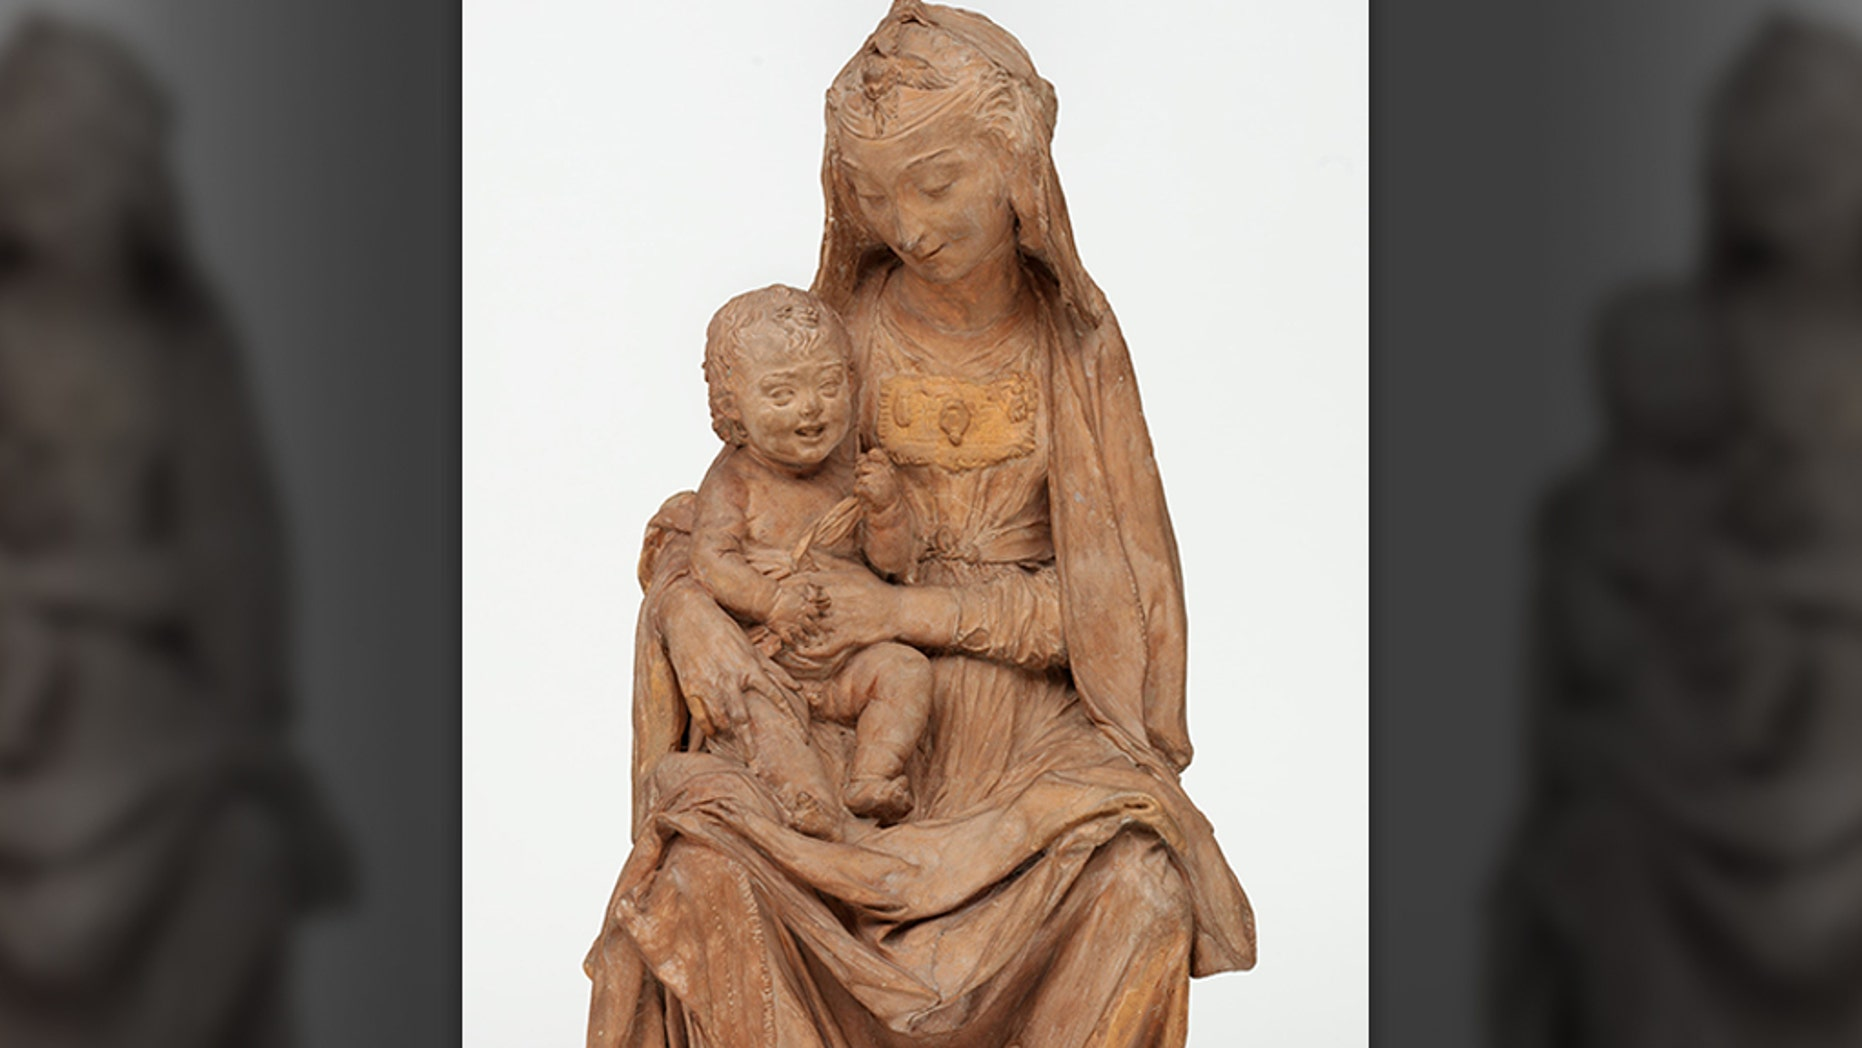 """The Virgin with the Laughing Child"" sculpture, which was long credited to Italian artist Antoni Rossellino, is now said to have been created by Leonardo da Vinci in 1472."